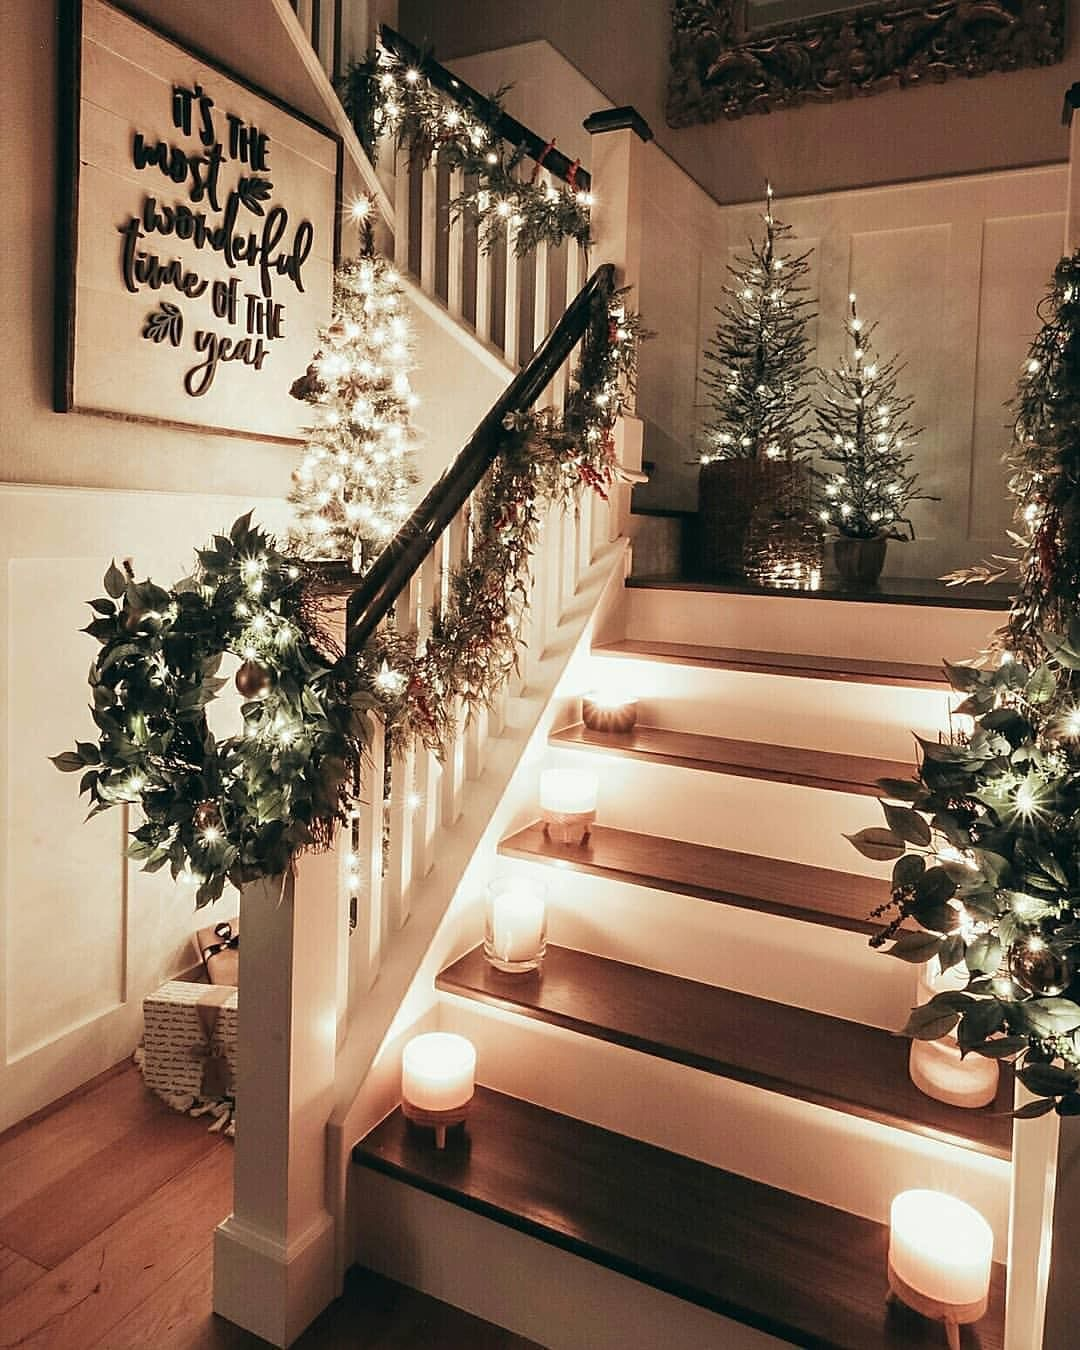 Vintagefarmhouseloving On Instagram Who Is Already Missing Christmas This House Is Just Beautif Christmas Staircase Farmhouse Christmas Indoor Christmas